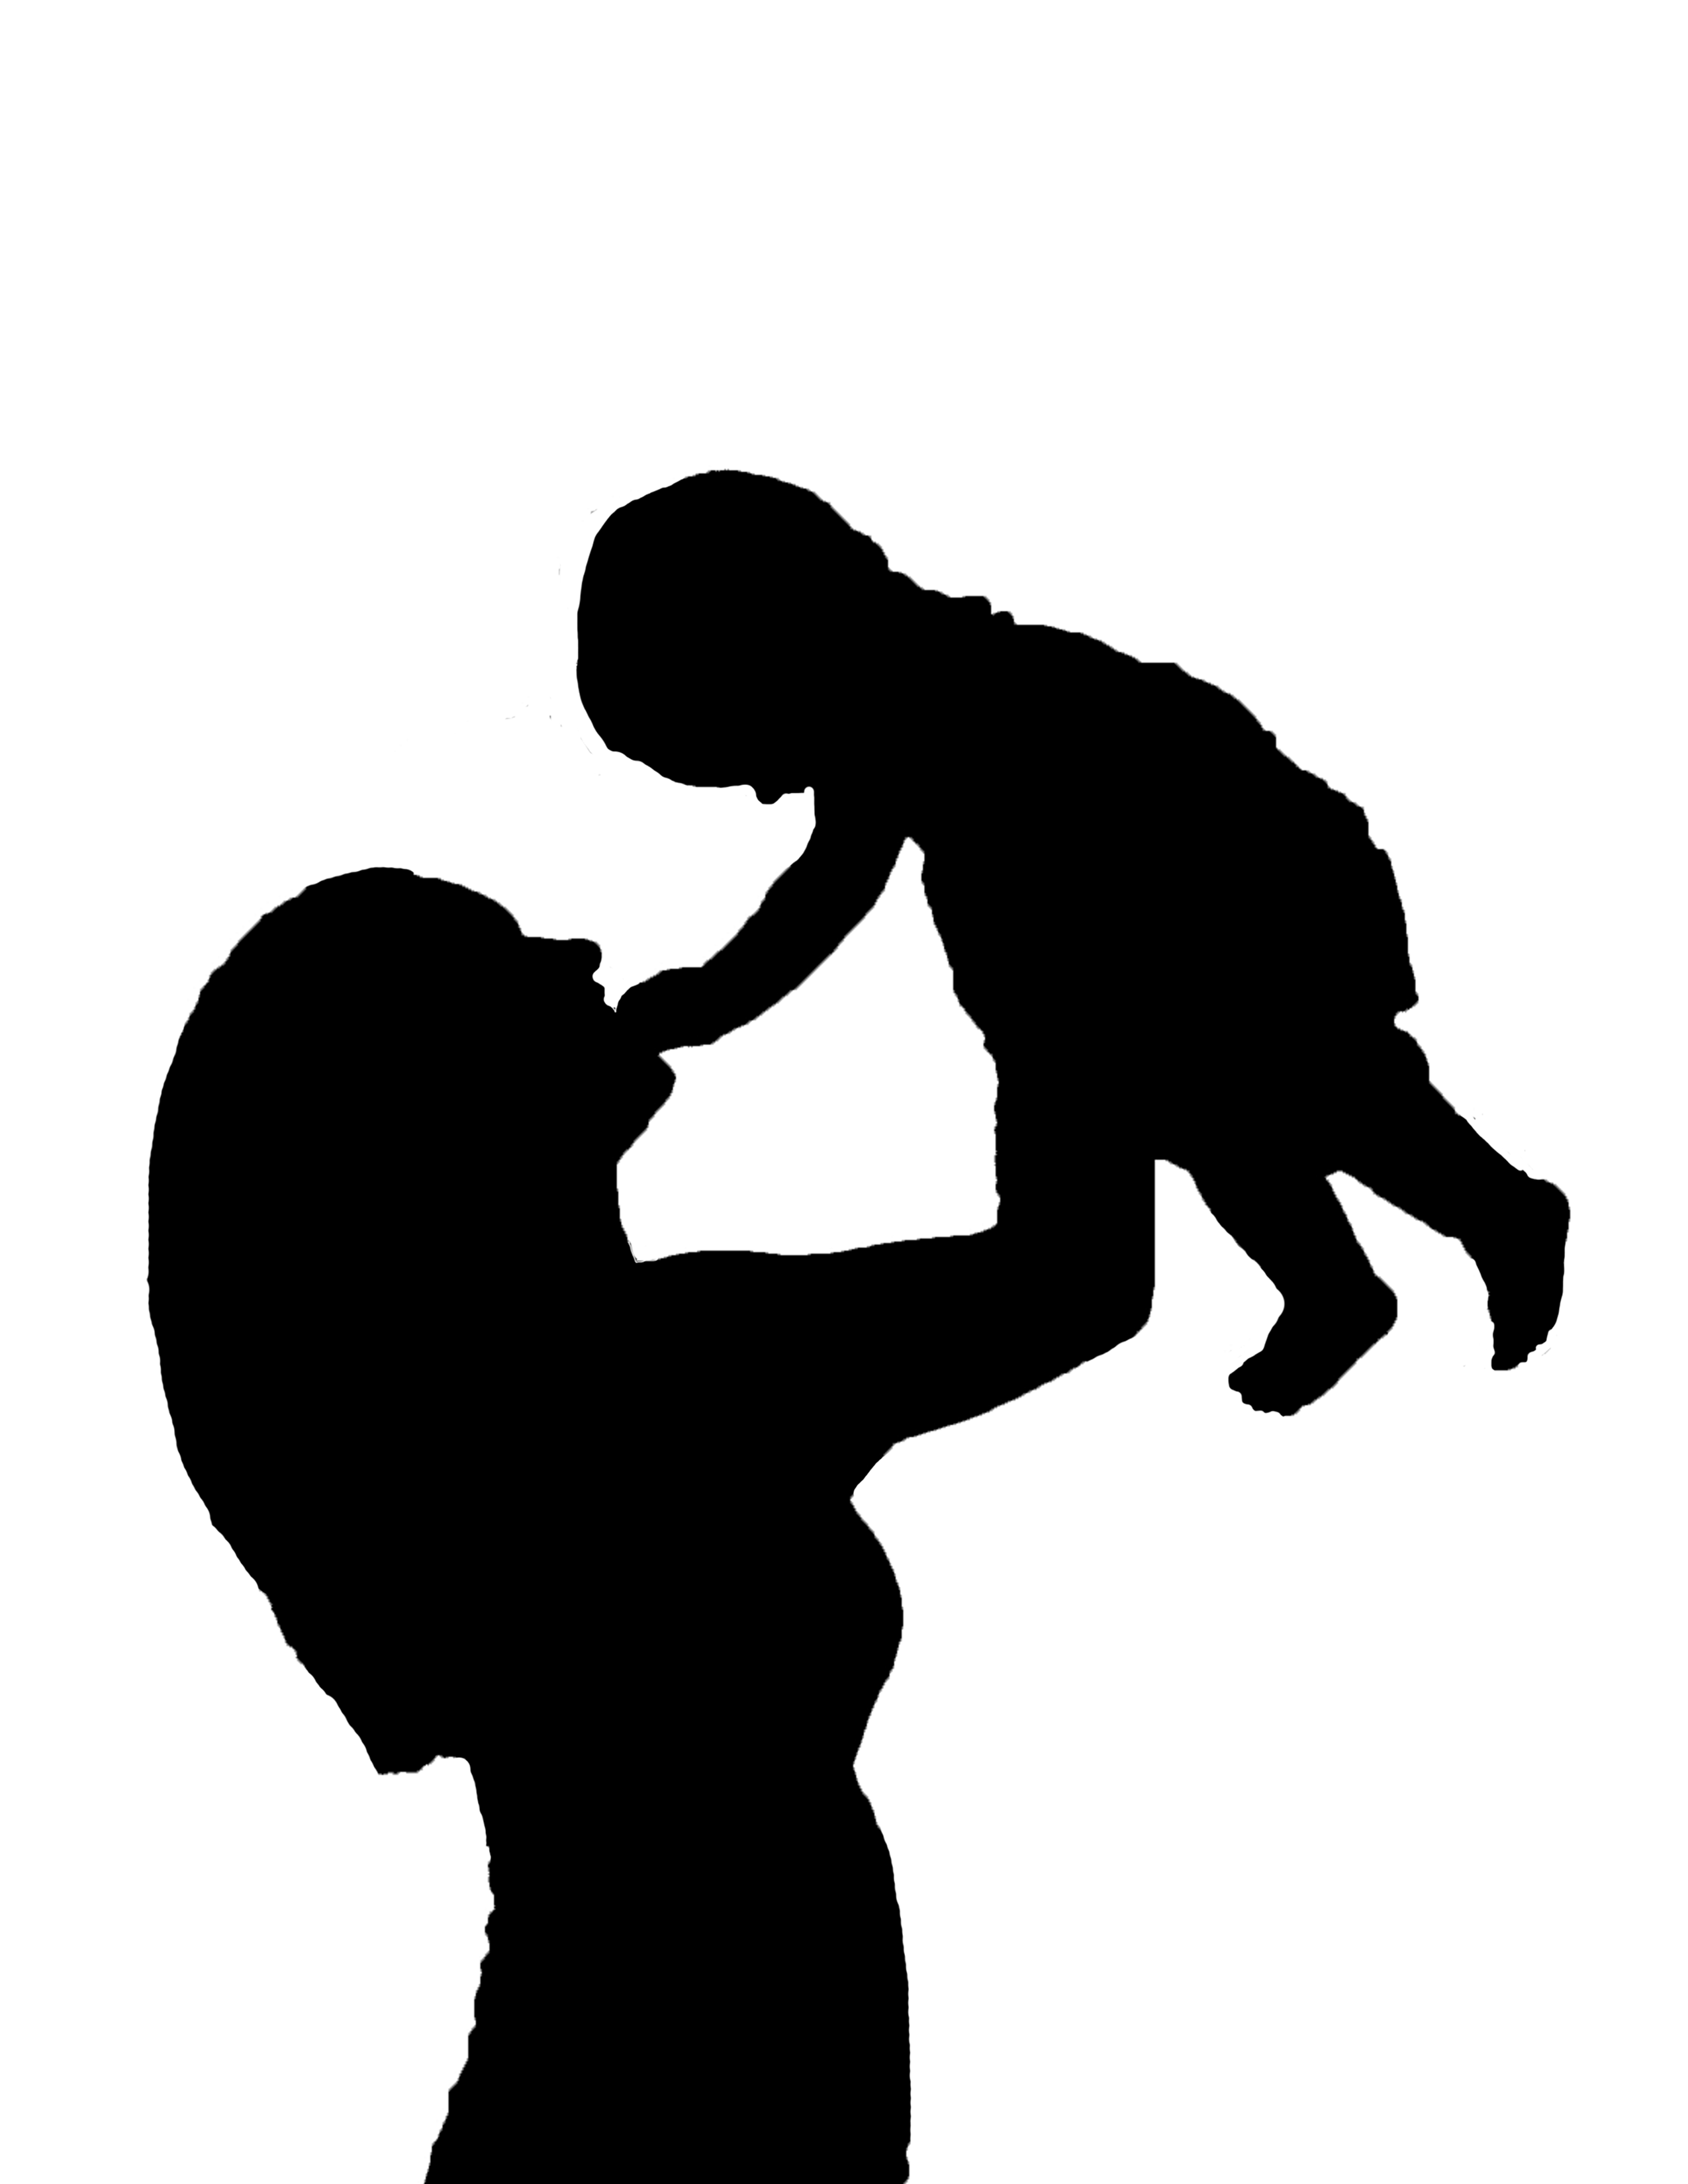 mom and baby silhouette clipart best